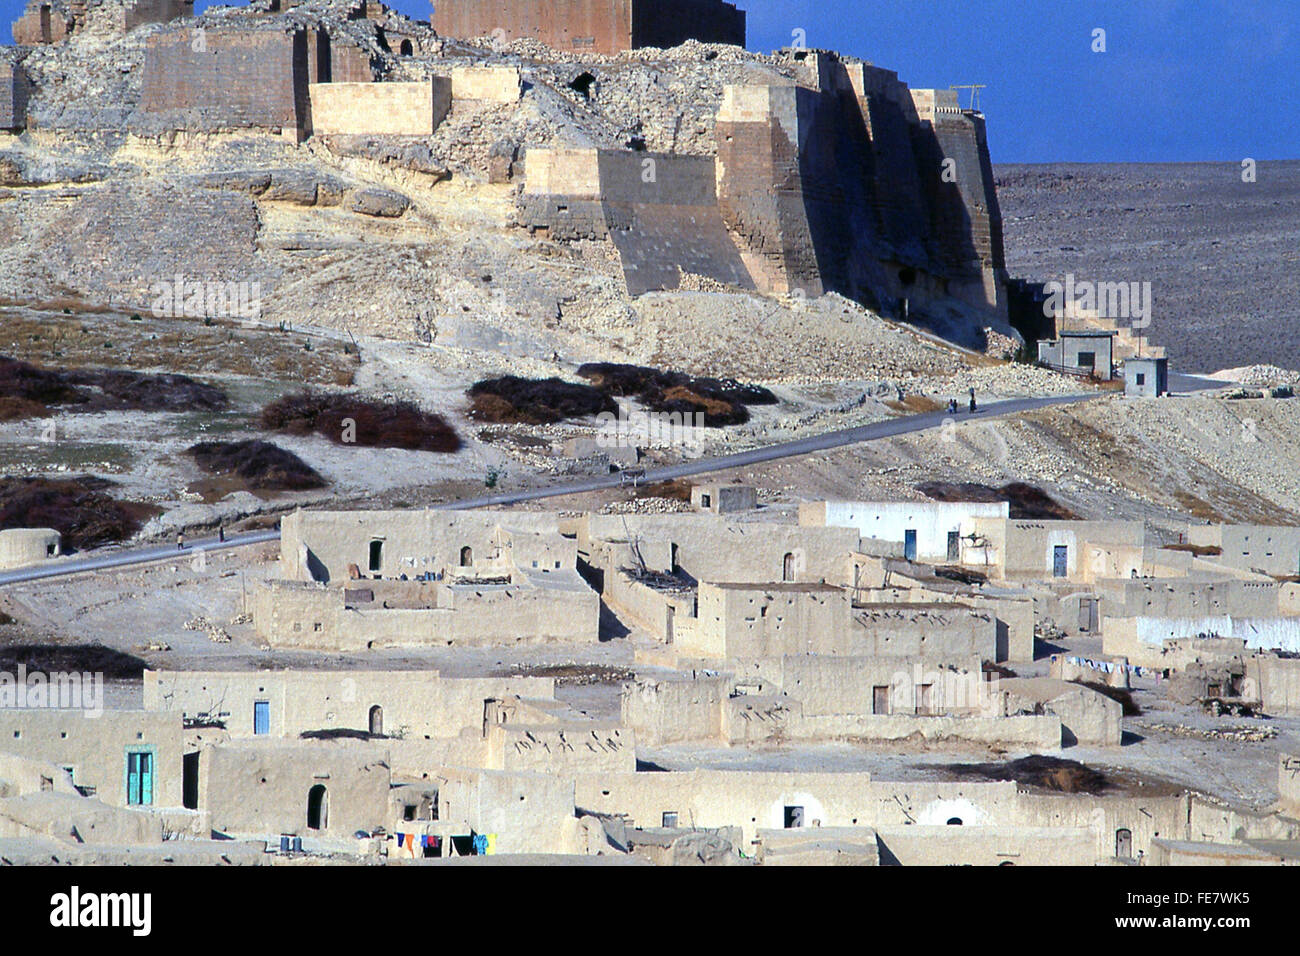 citadel of historic Crusader castle of Qalat Nejm in desert of Syria Middle East - Stock Image